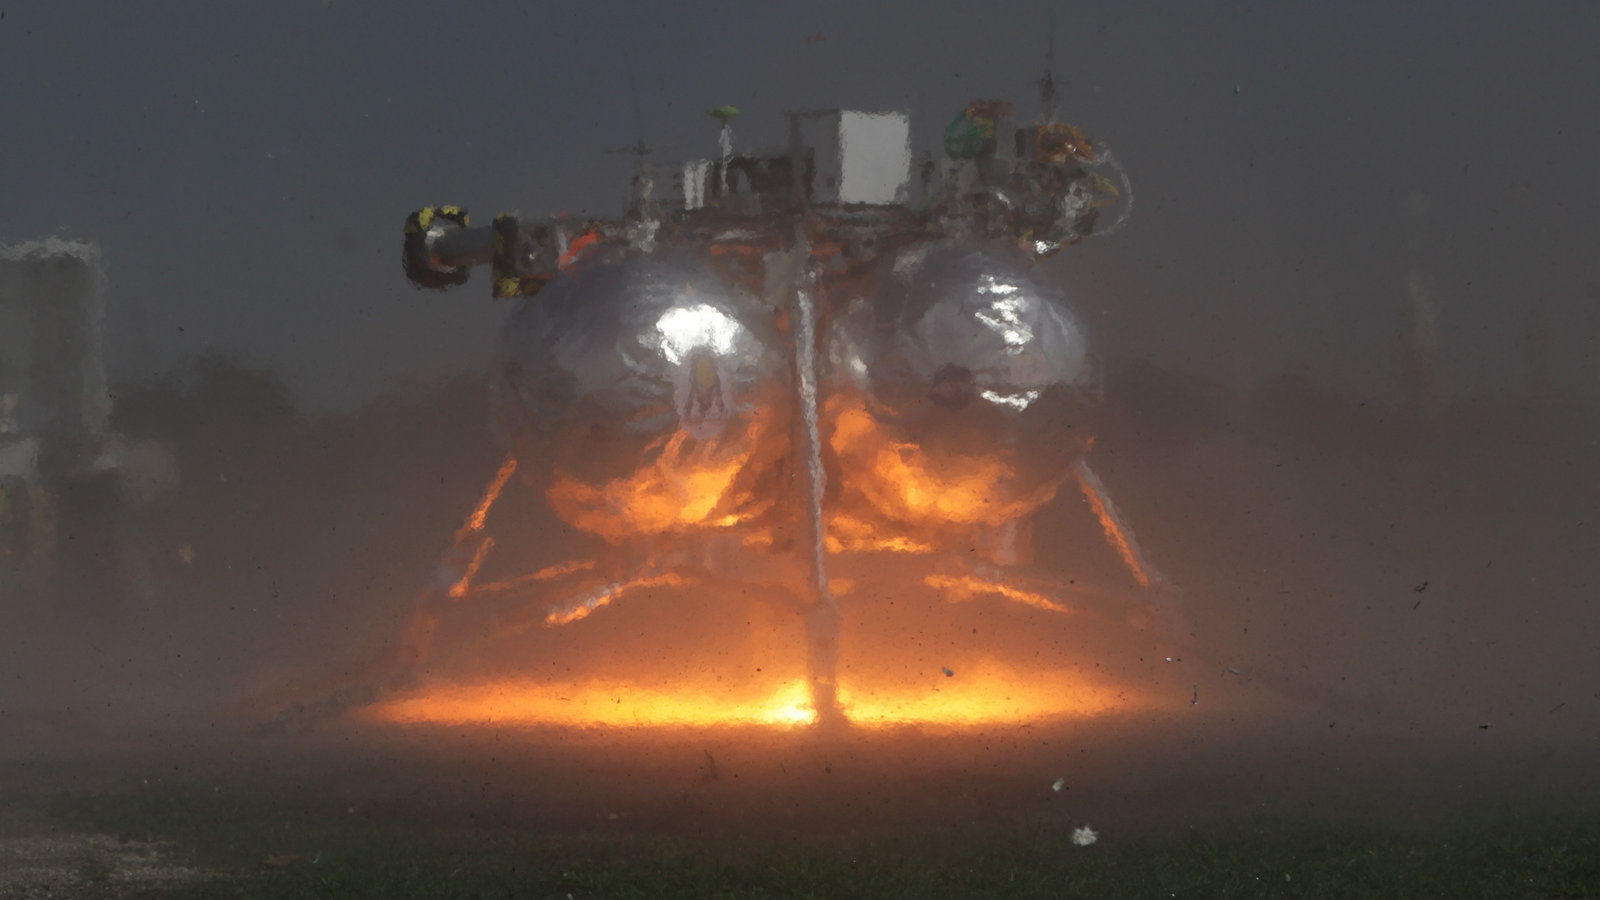 NASA's Morpheus Lander Could Use Space Waste To Make Its Own Fuel